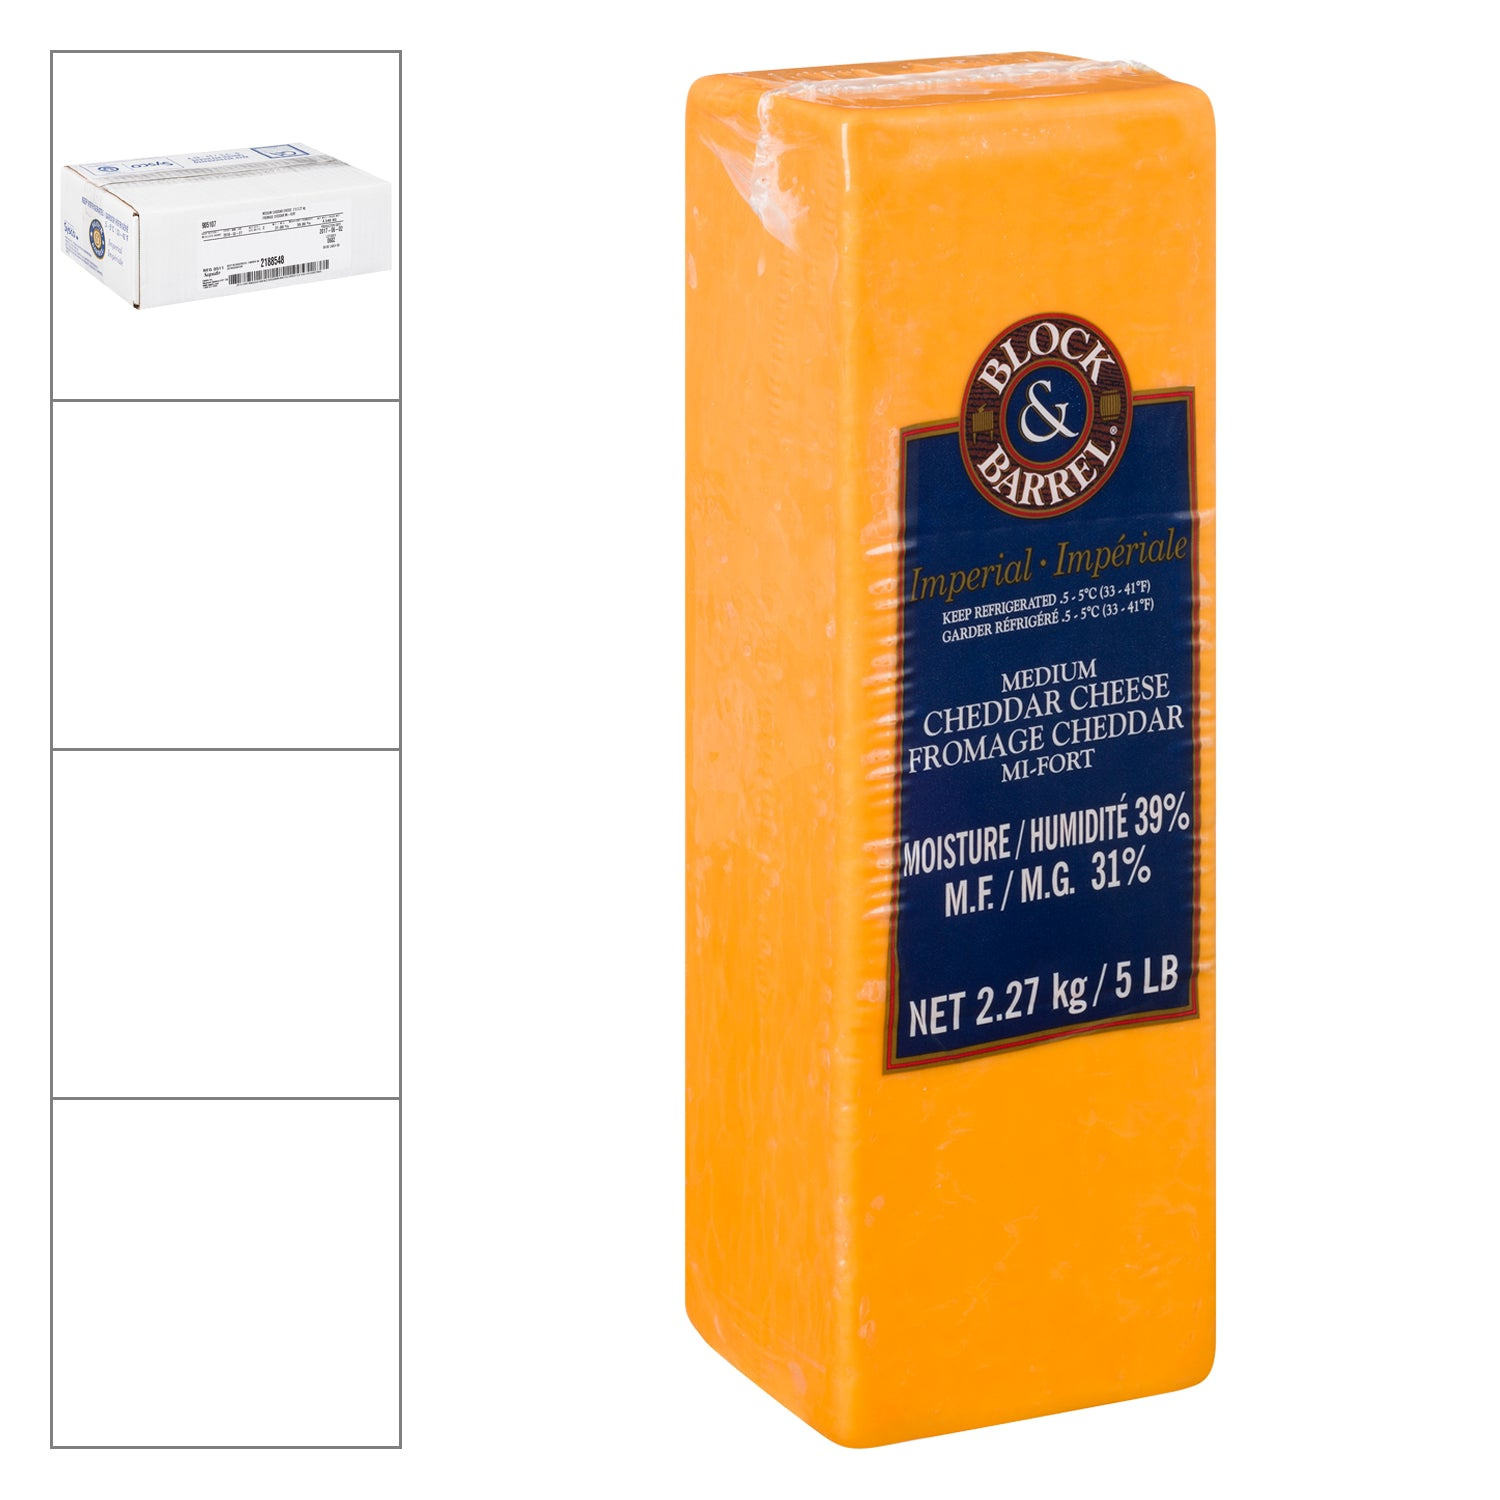 Sysco Block & Barrel Medium Cheddar Cheese 2.27 kg - 2 Pack [$16.52/kg]